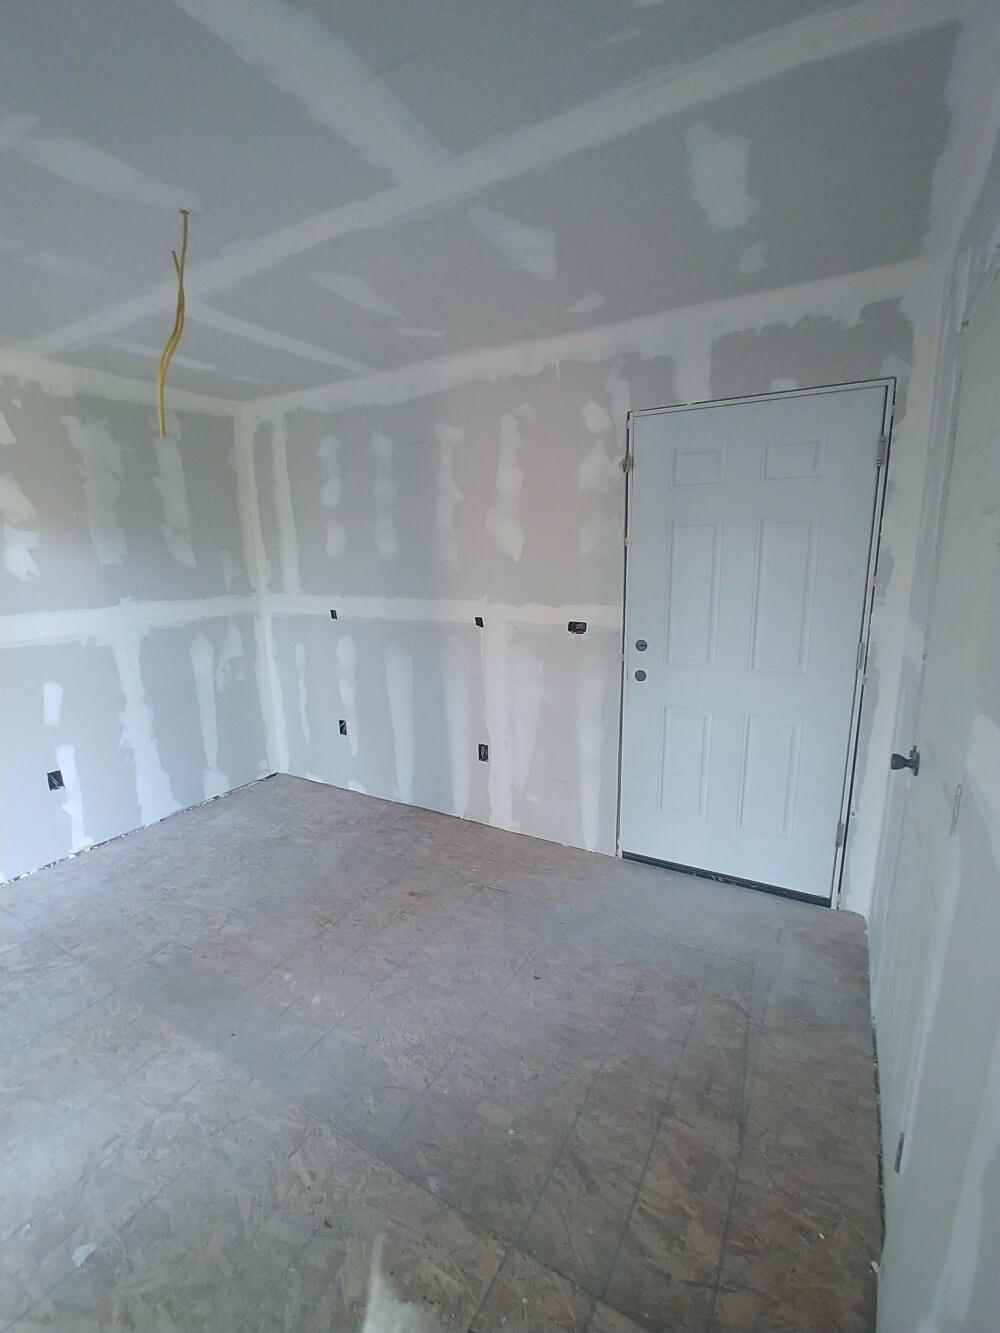 Remodeling the Garage to Create a Workshop